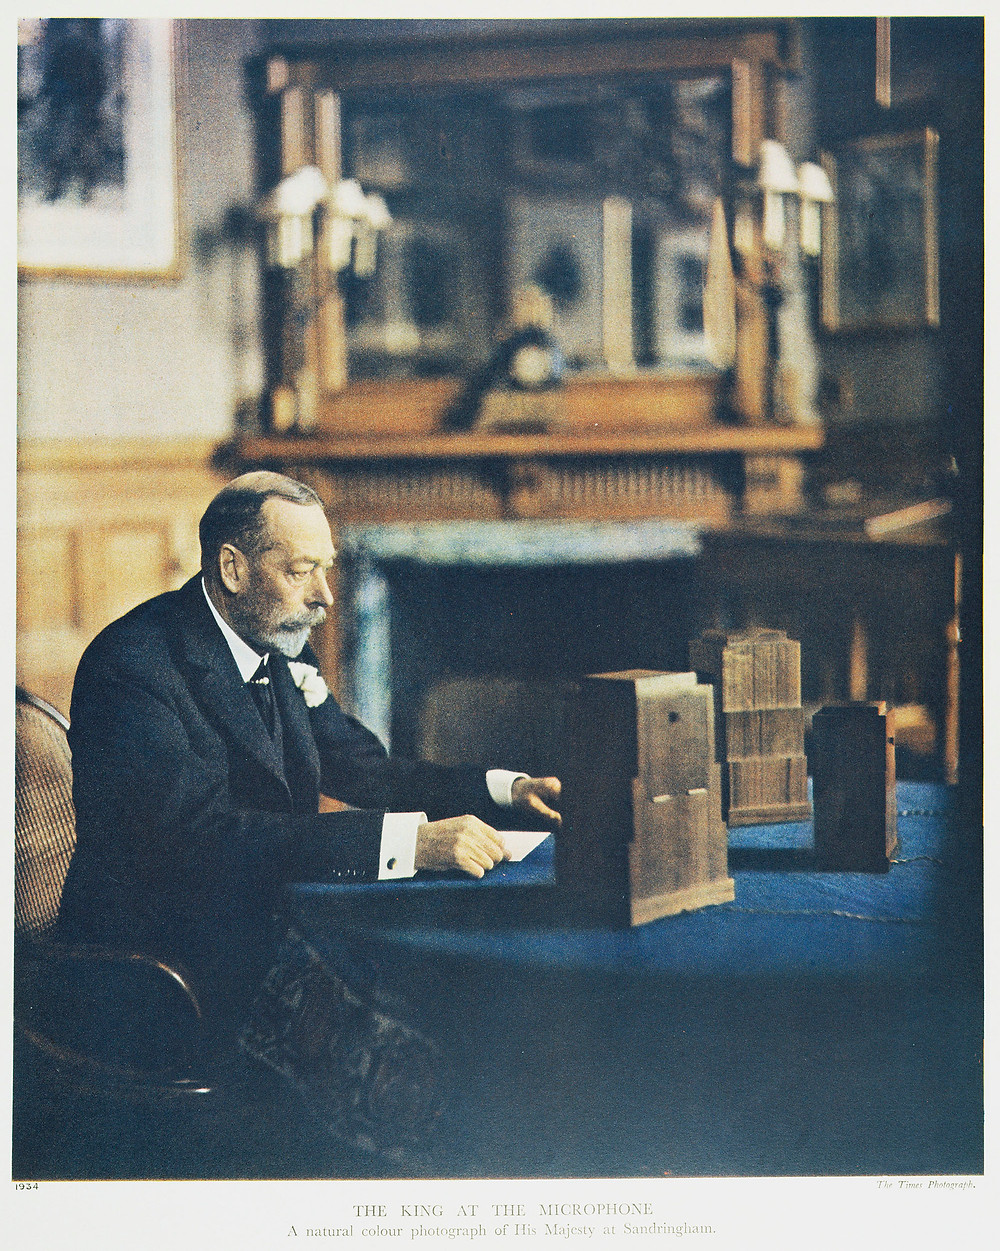 King George V speaking to his people's during the Christmas day king's speech from Sandringham House, 1934. Royal history, royal family, british monarchy